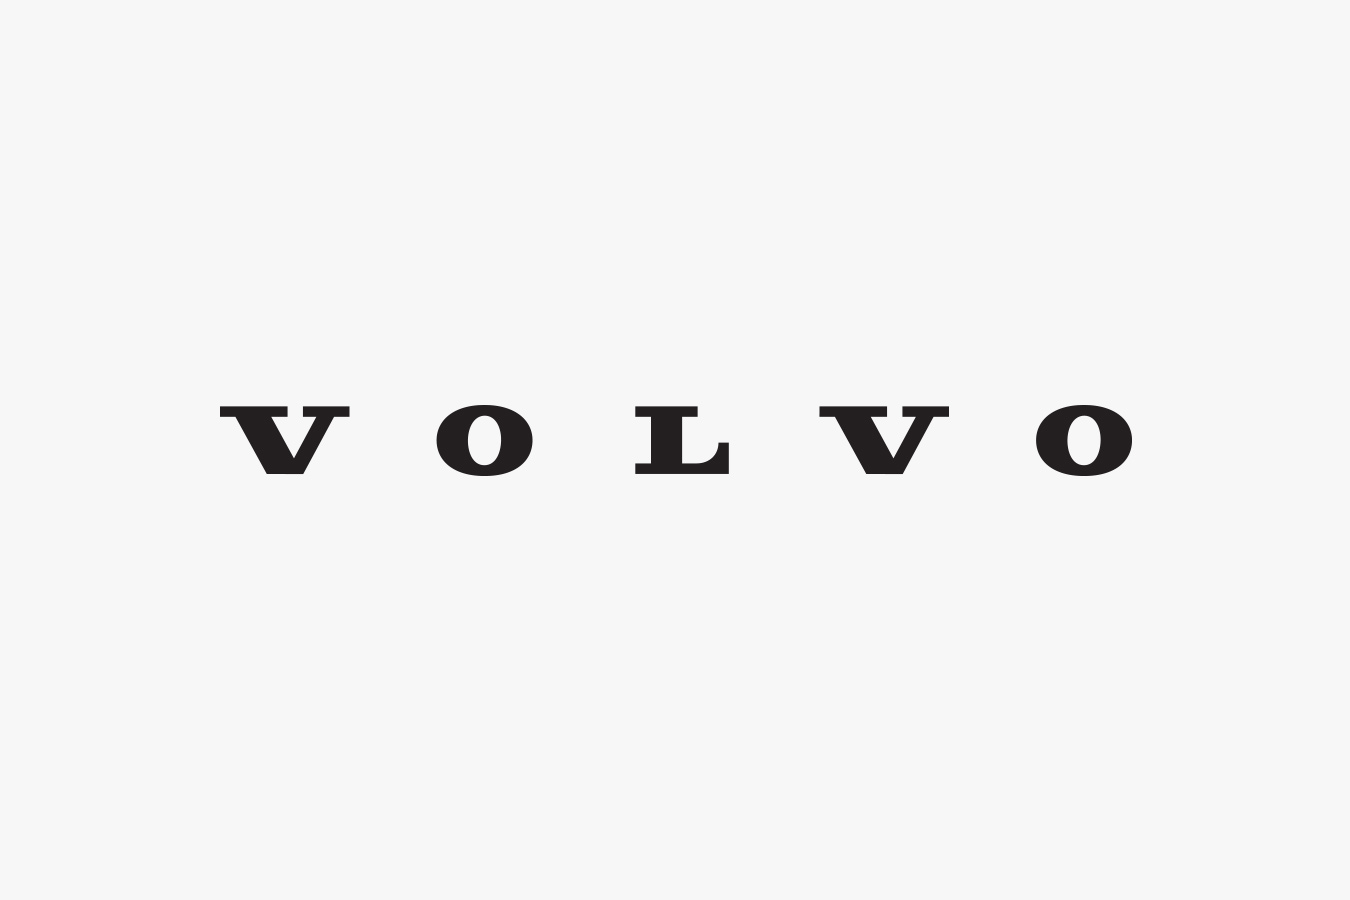 Volvo Logos - Iron Mark Grey 2014